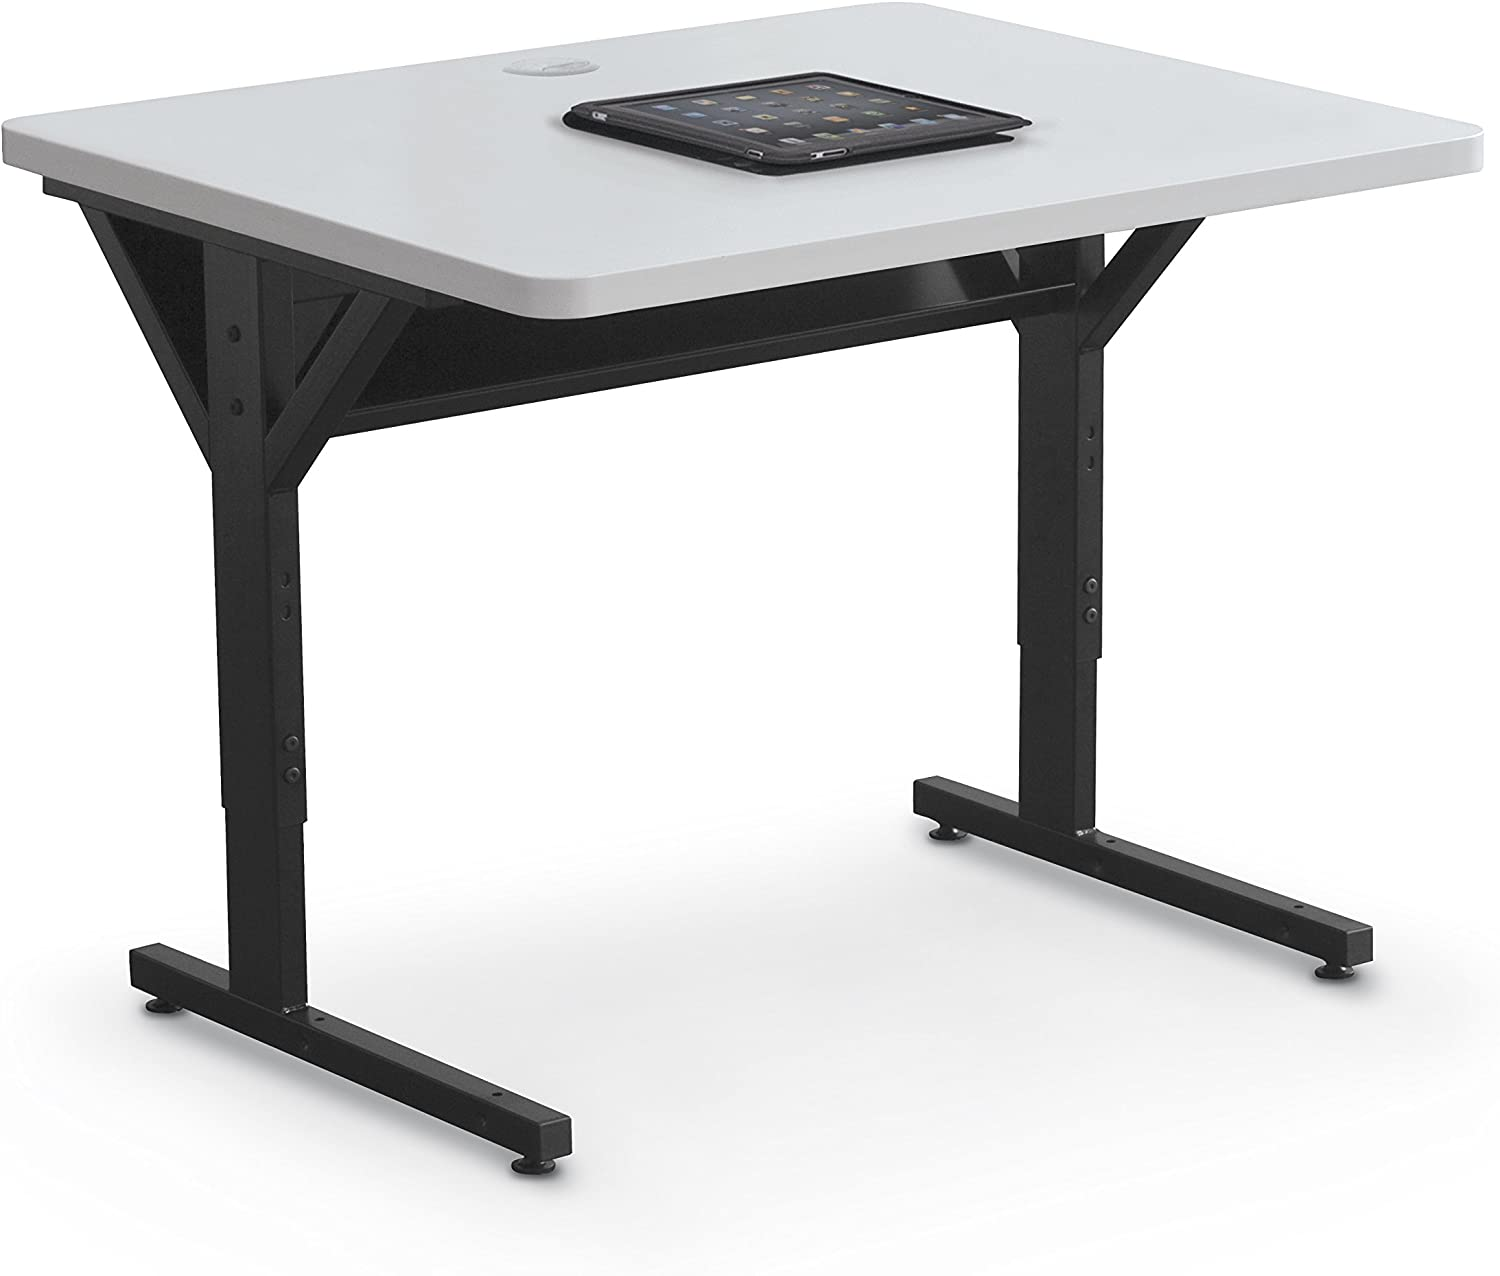 "Balt Brawny Adjustable Height Mobile Training & Maker Space Table, 36""W x 30""D, Gray"